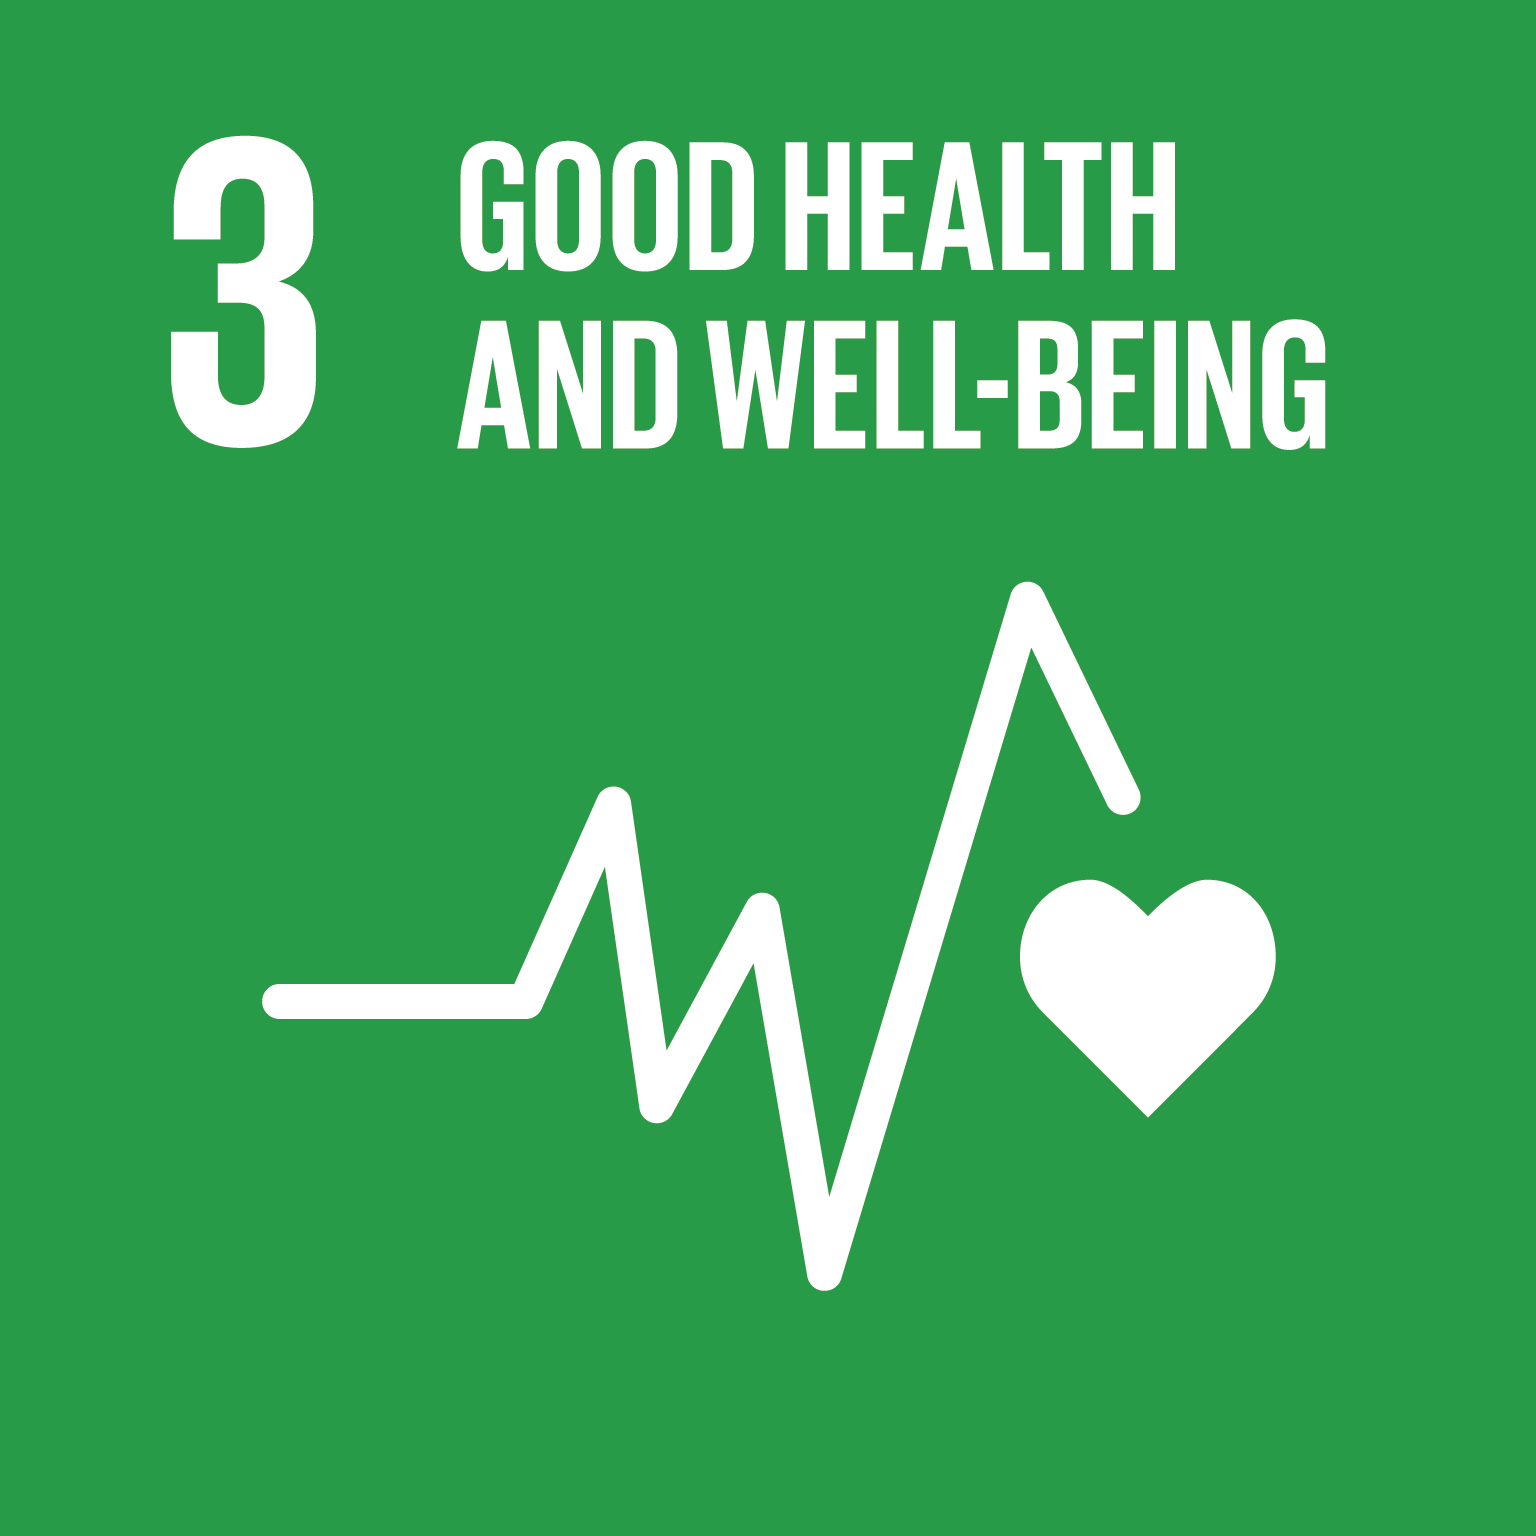 Good Health and Well-Being for people